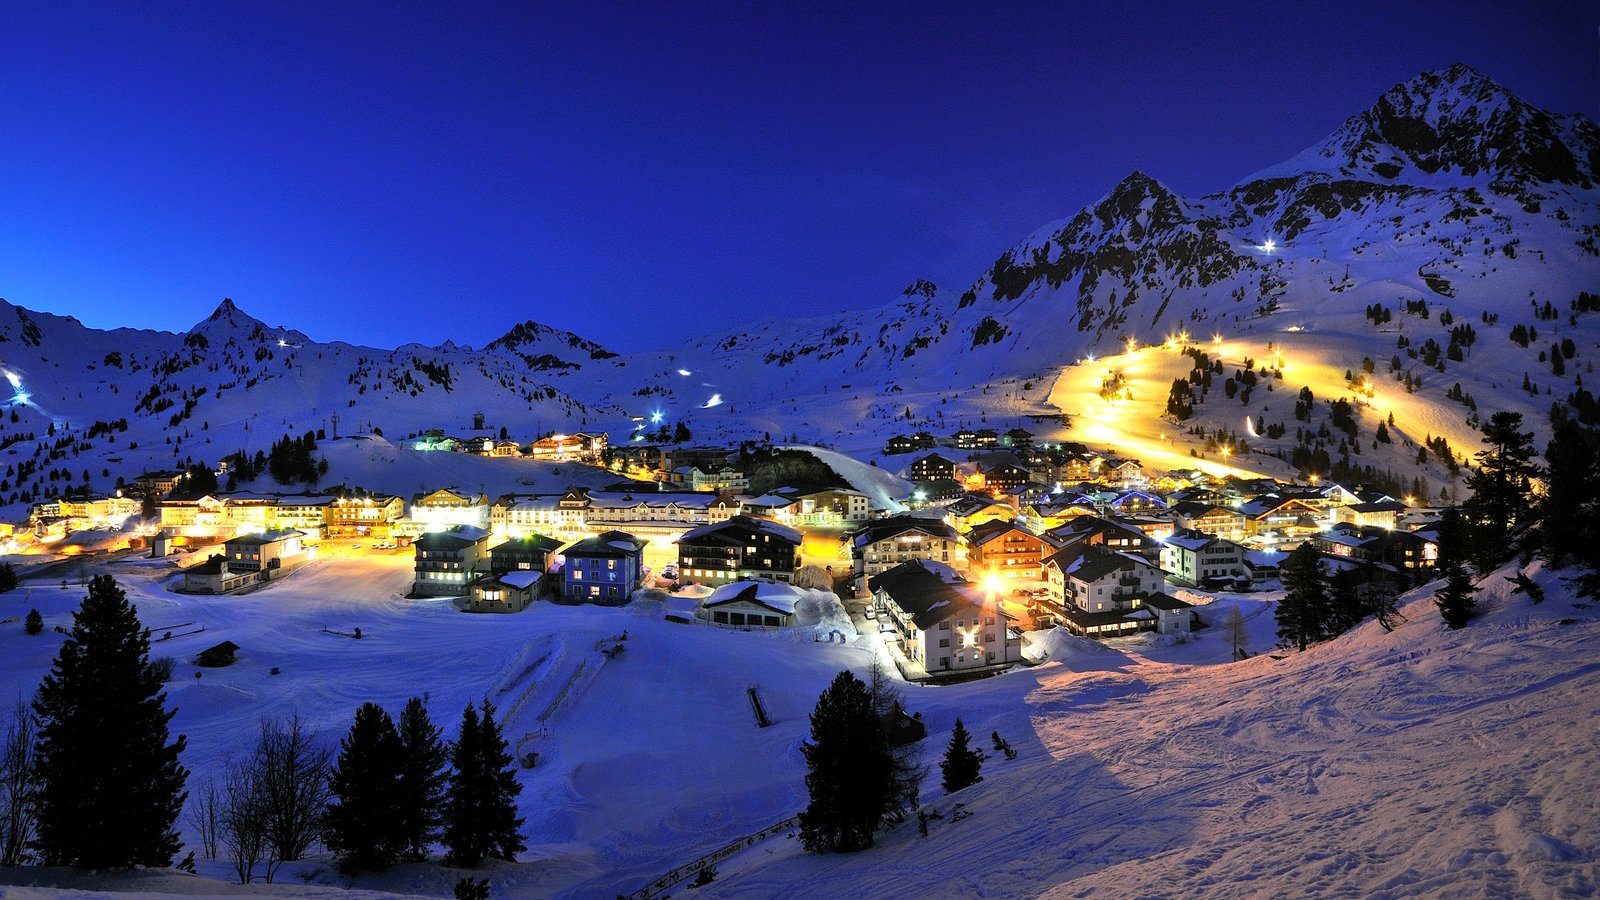 Obertauern featuring a small town or village, night scenes and snow